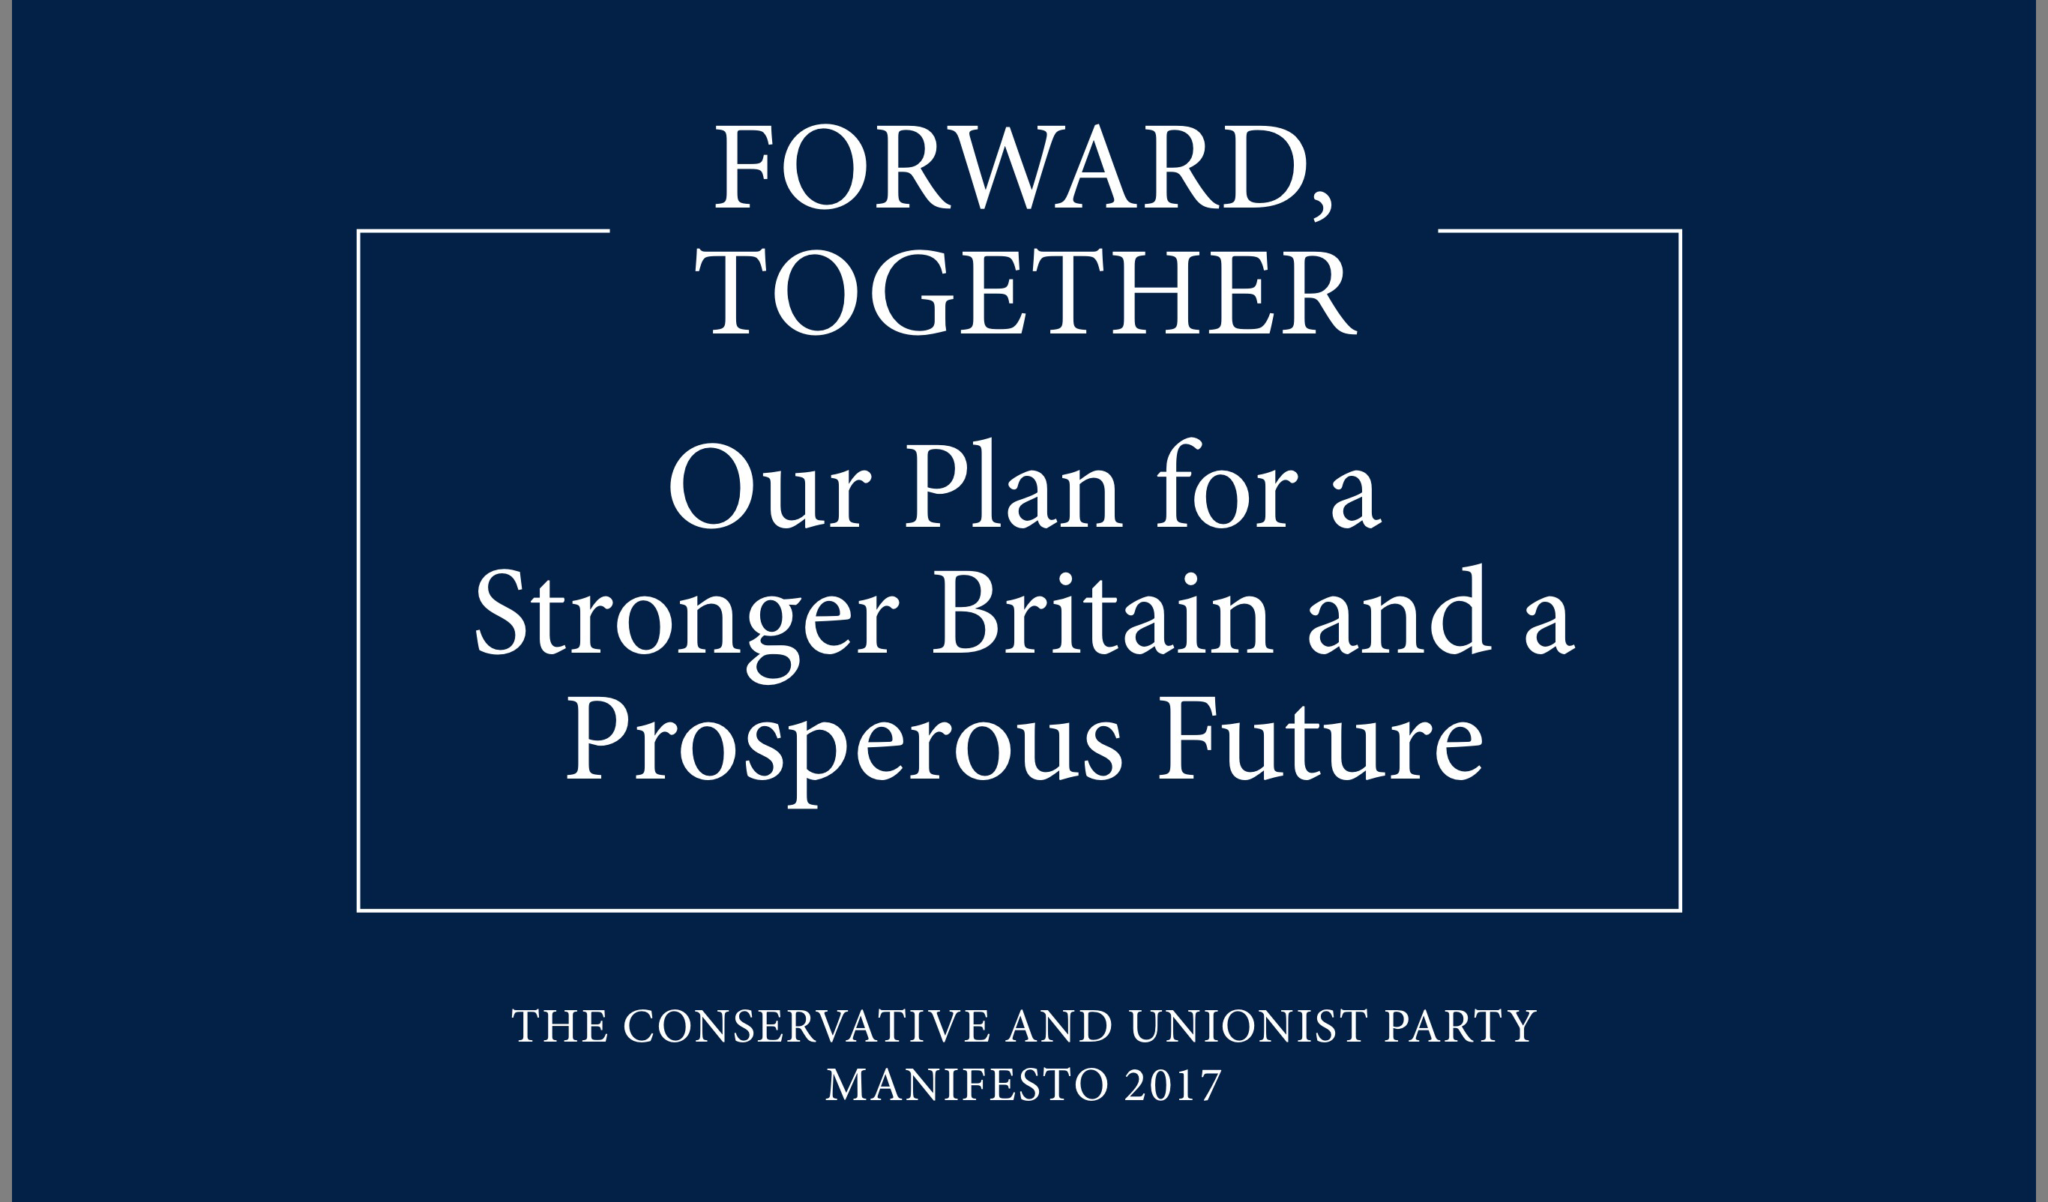 Immigration law and policy after the election: unfortunately, the Conservative manifesto tells us what is coming